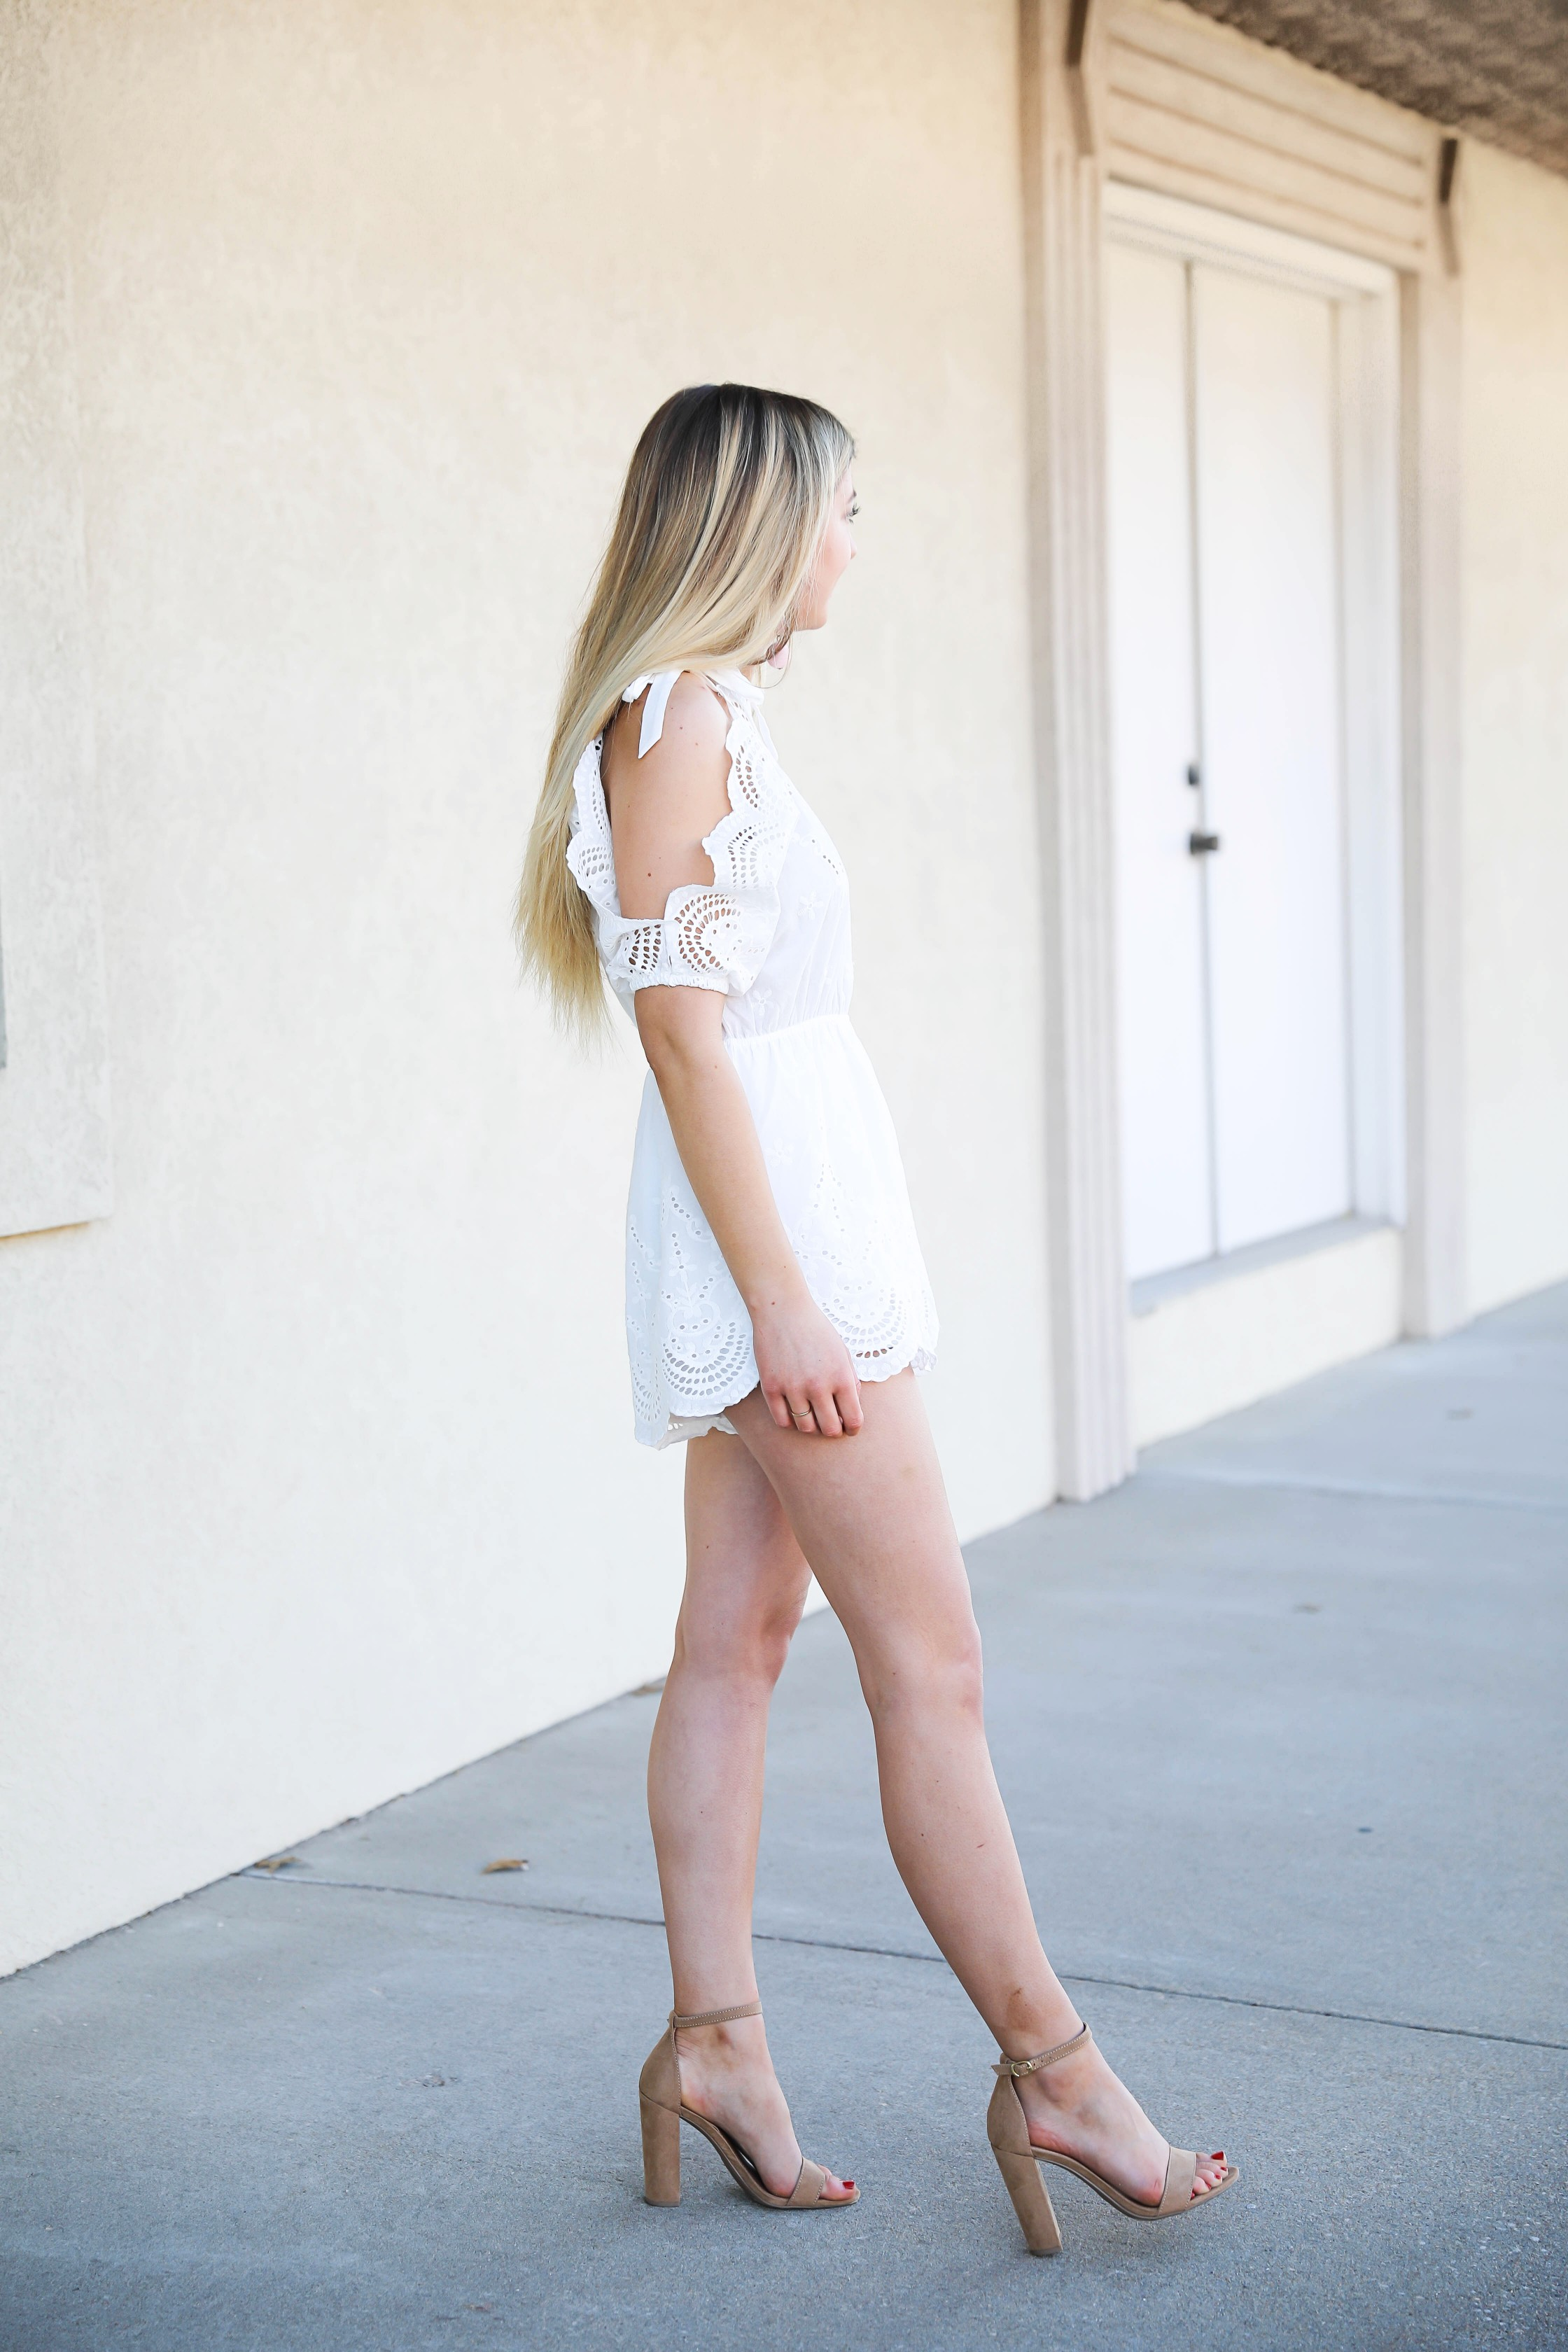 Scalloped romper from Hello Molly! Perfect outfit for valentine's day! Cute white romper for spring or summer! Get the details on daily dose of charm by lauren lindmark